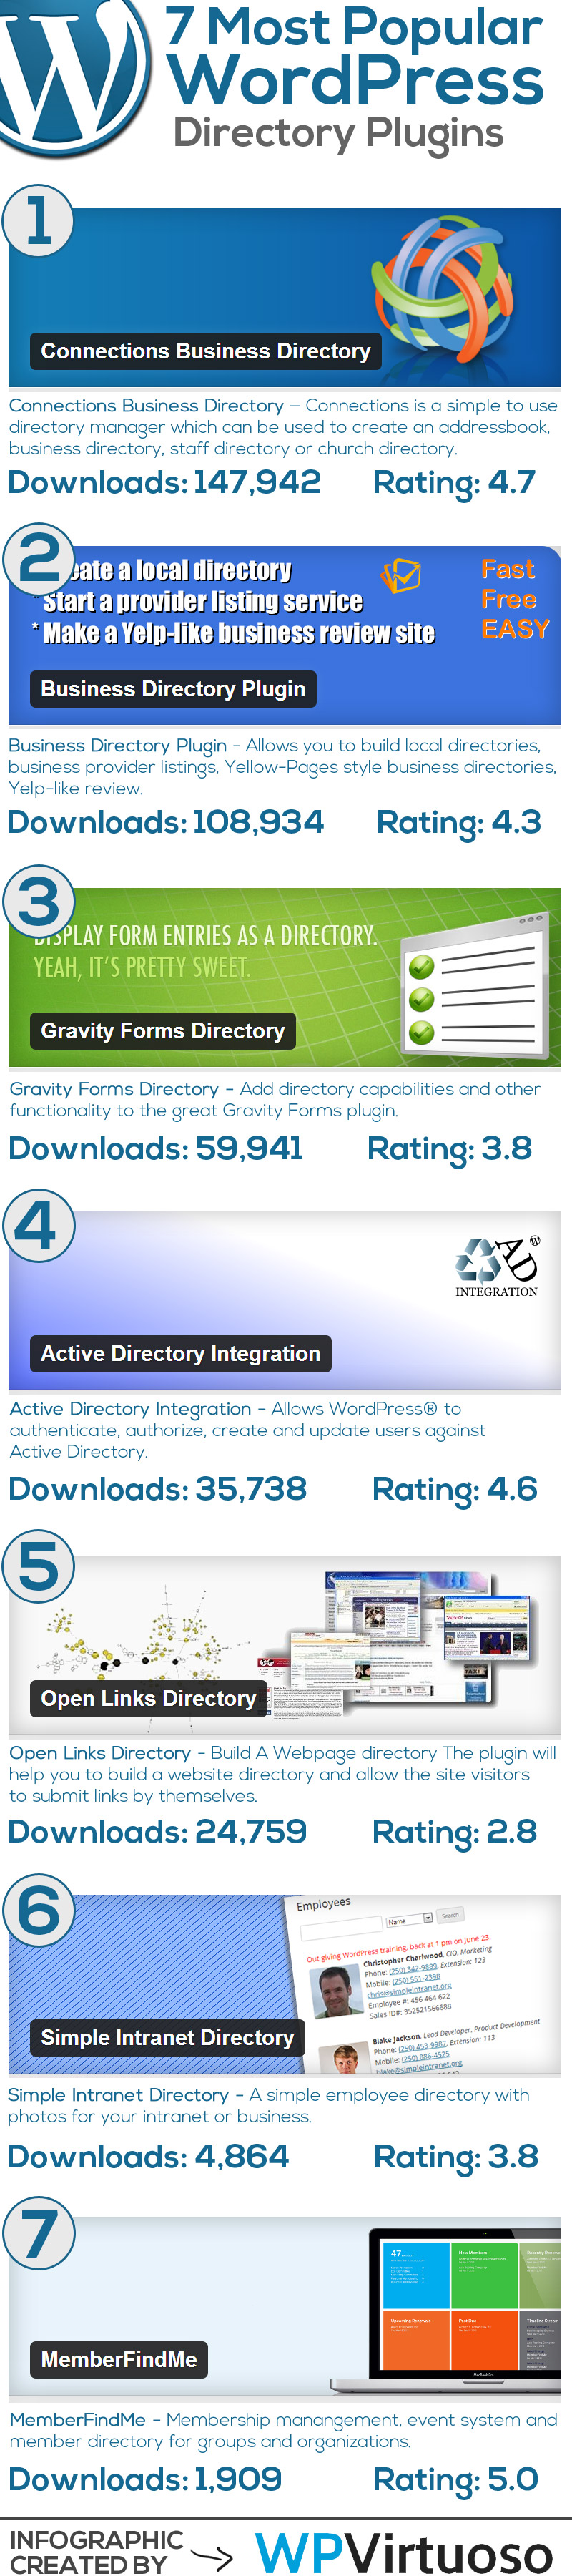 Best-Wordpress-Directory-Plugins-Infographic